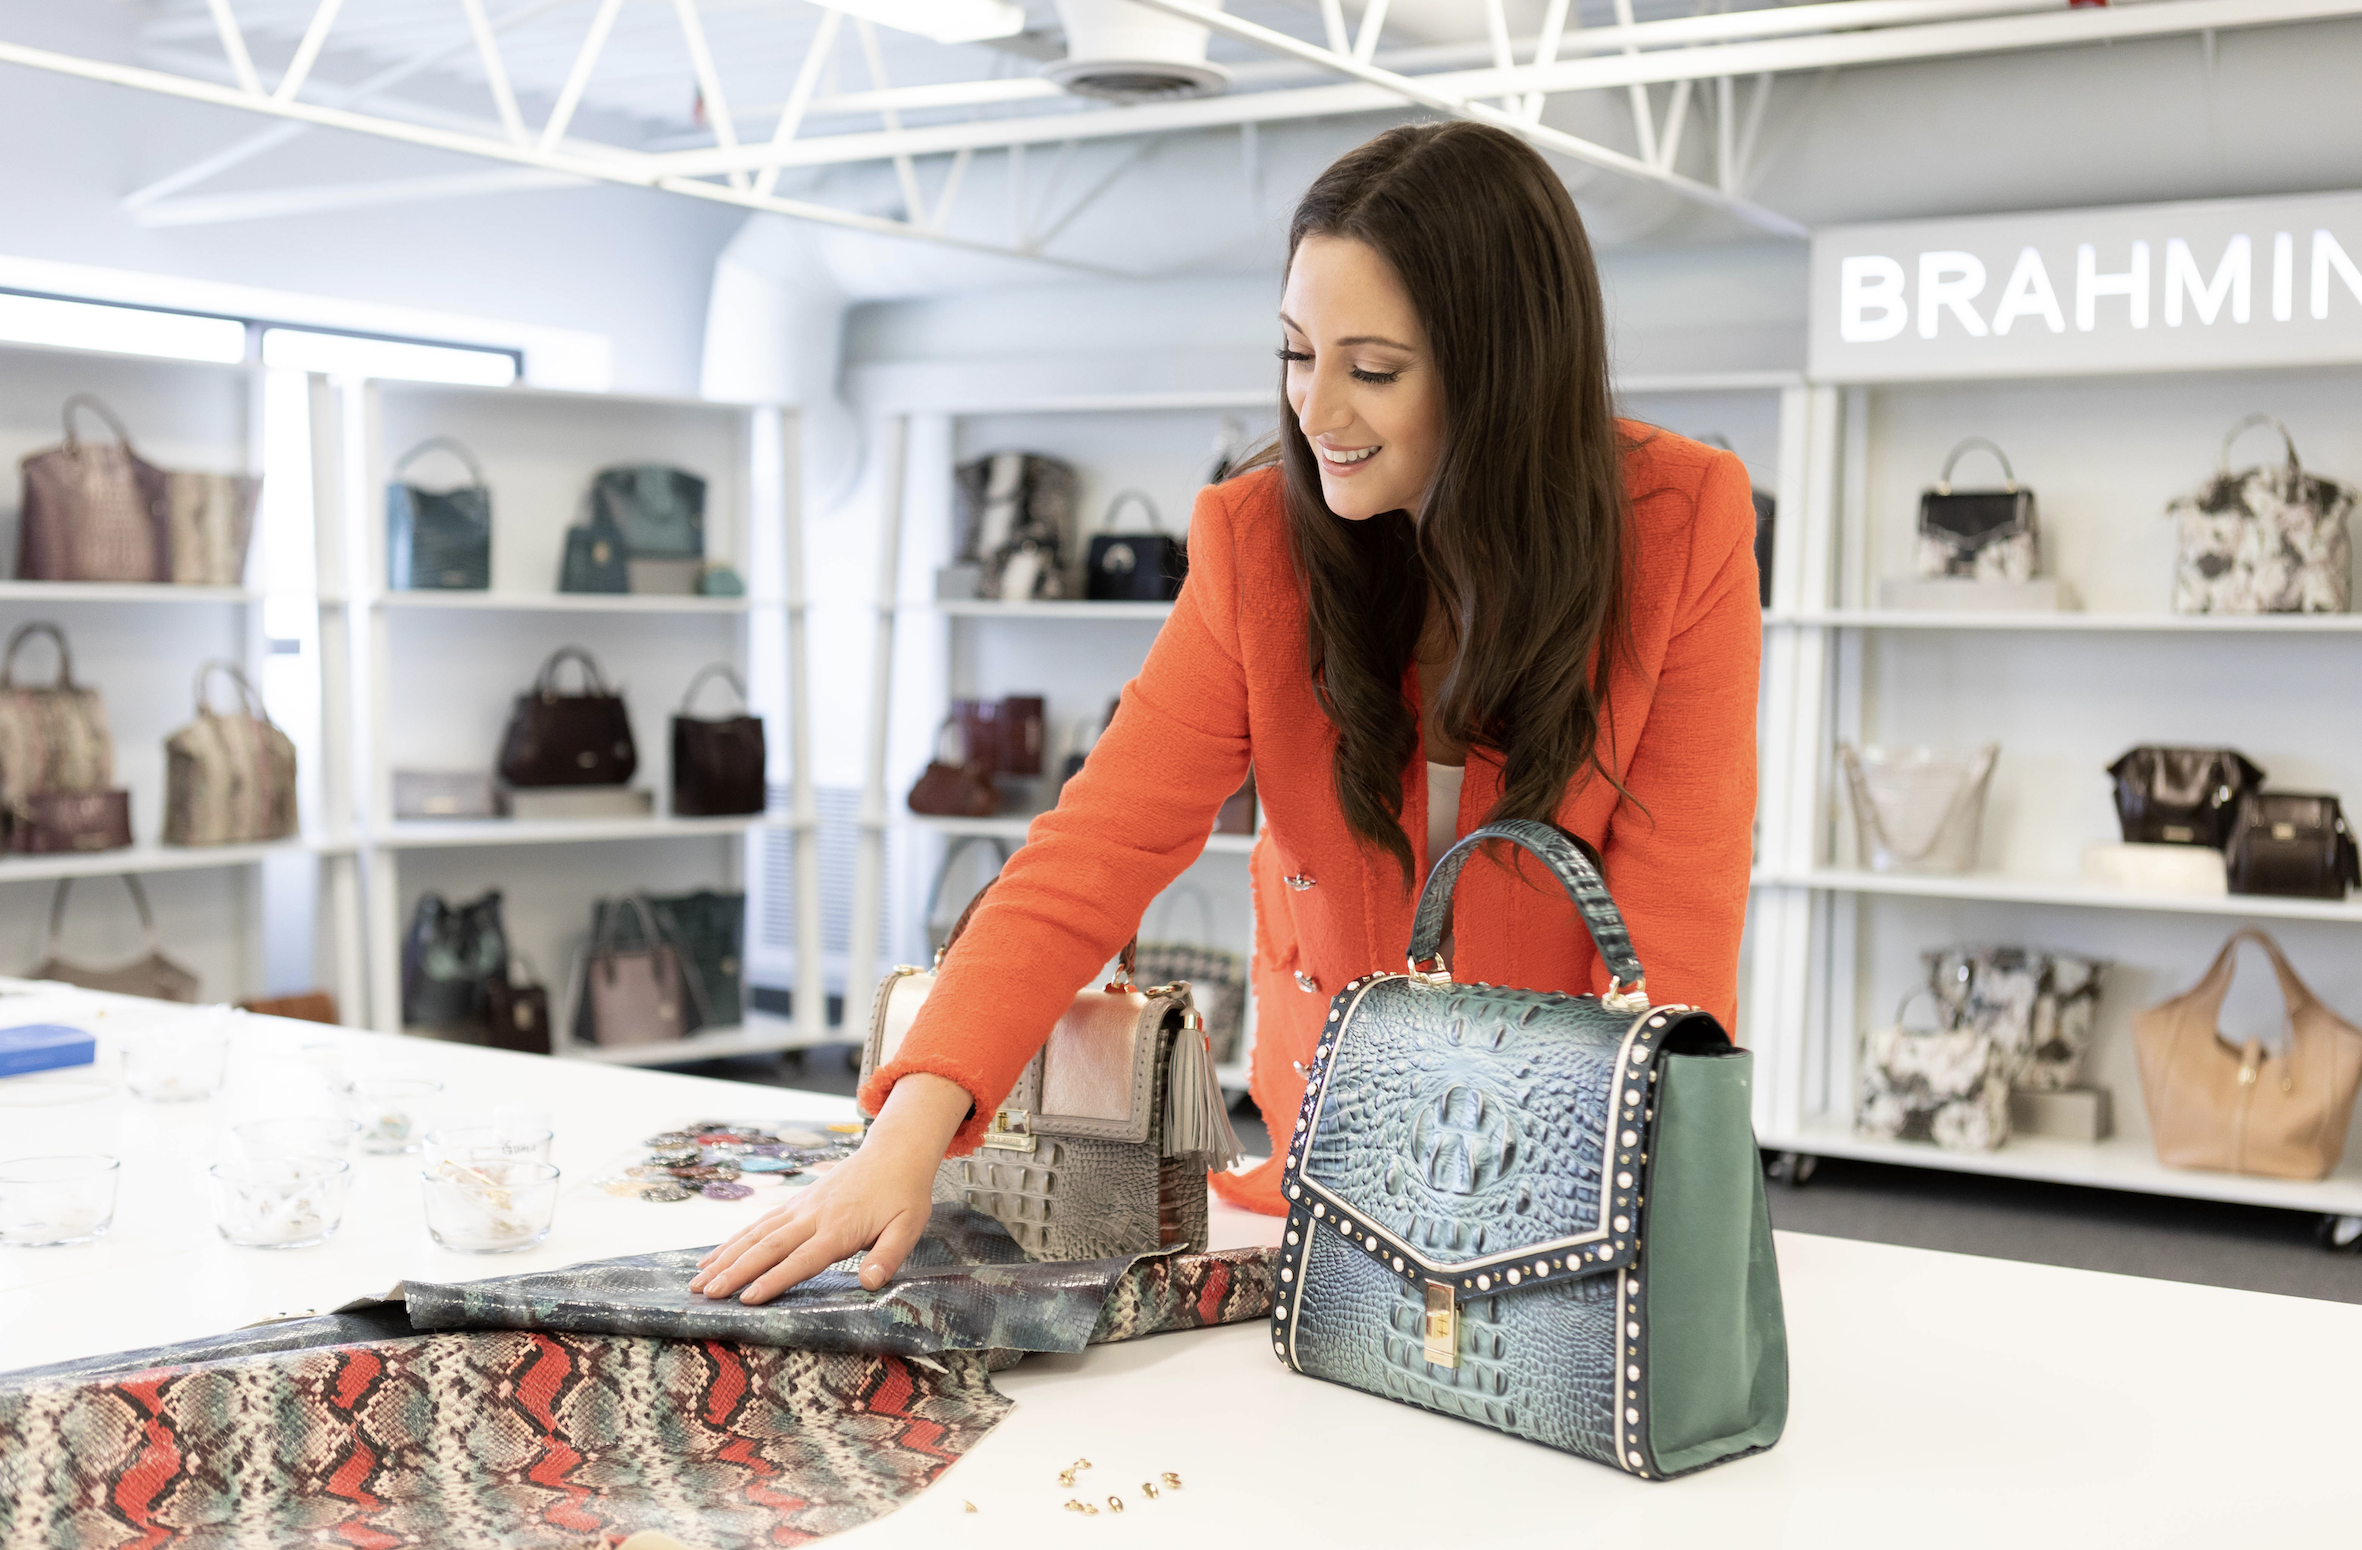 Brahmin x Micaela Erlanger Launch a Holiday Handbag Collection